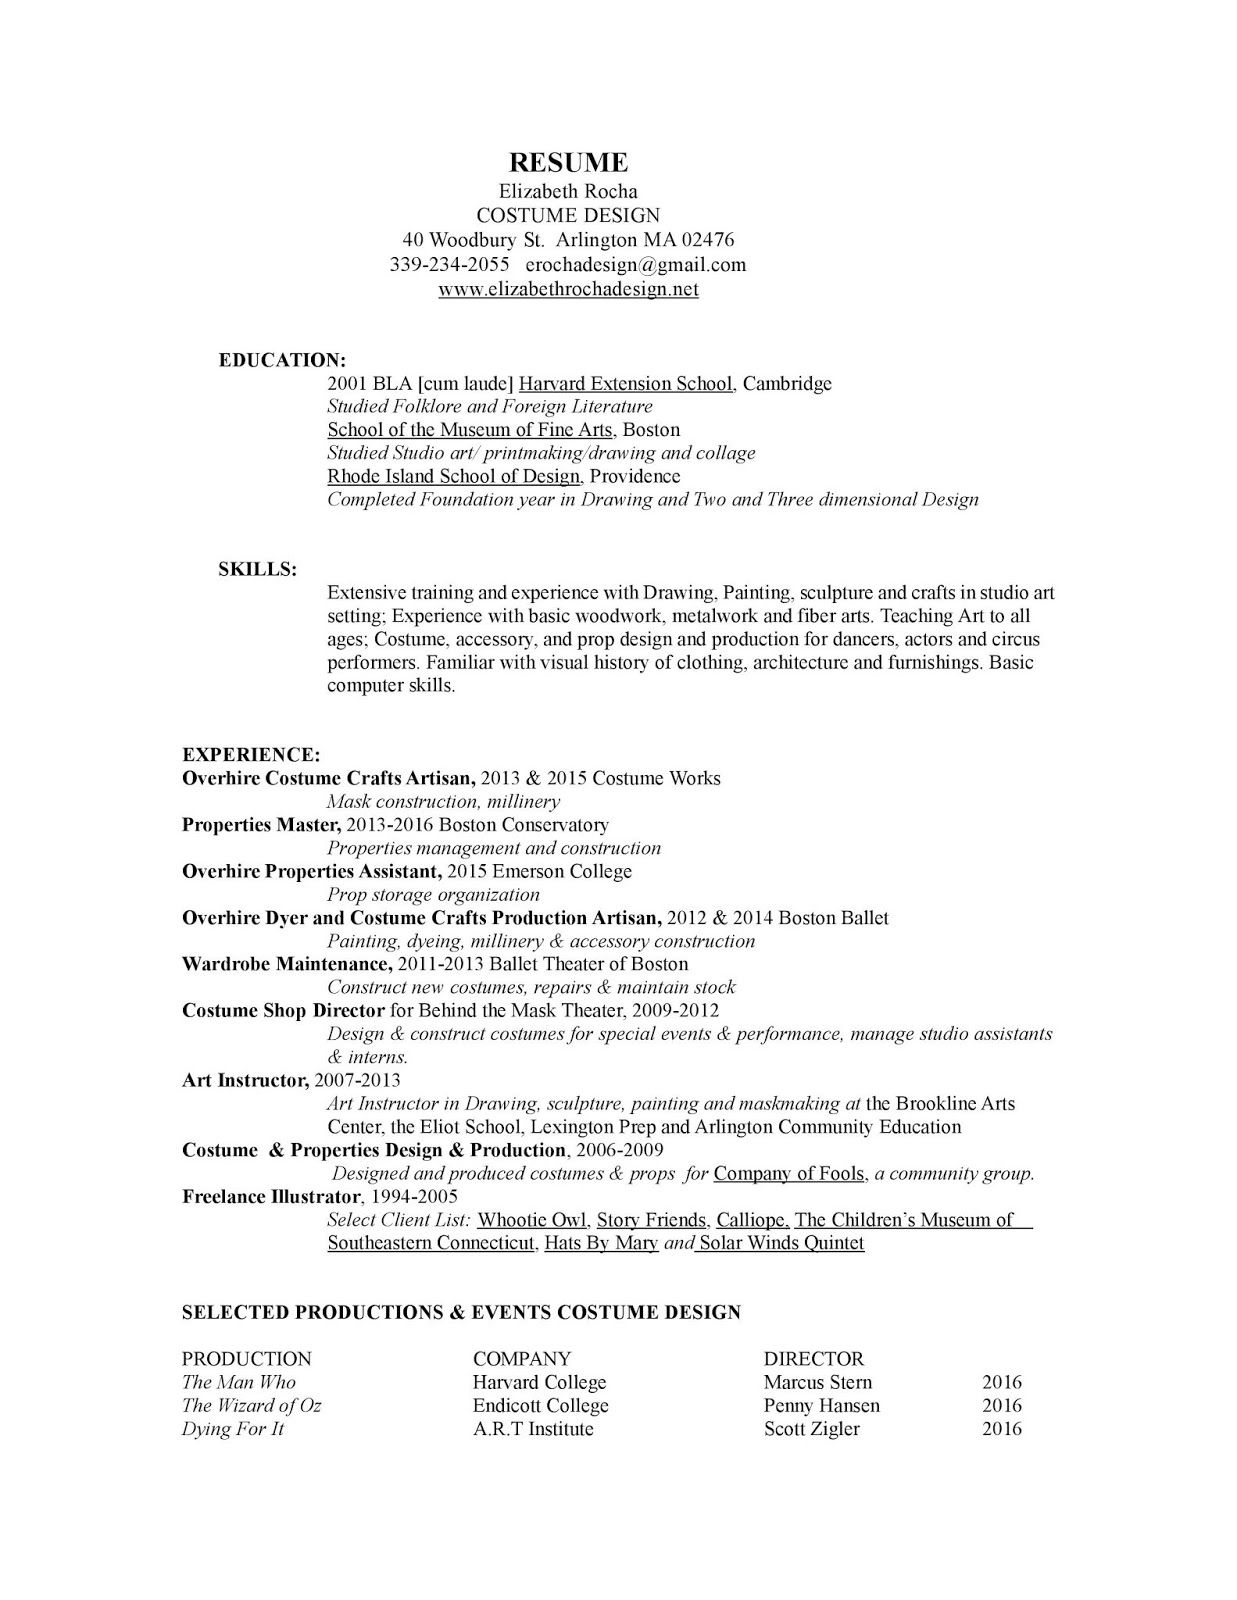 harvard extension school resume resumes and cover letters on resu university google Resume Harvard University Extension School Resume